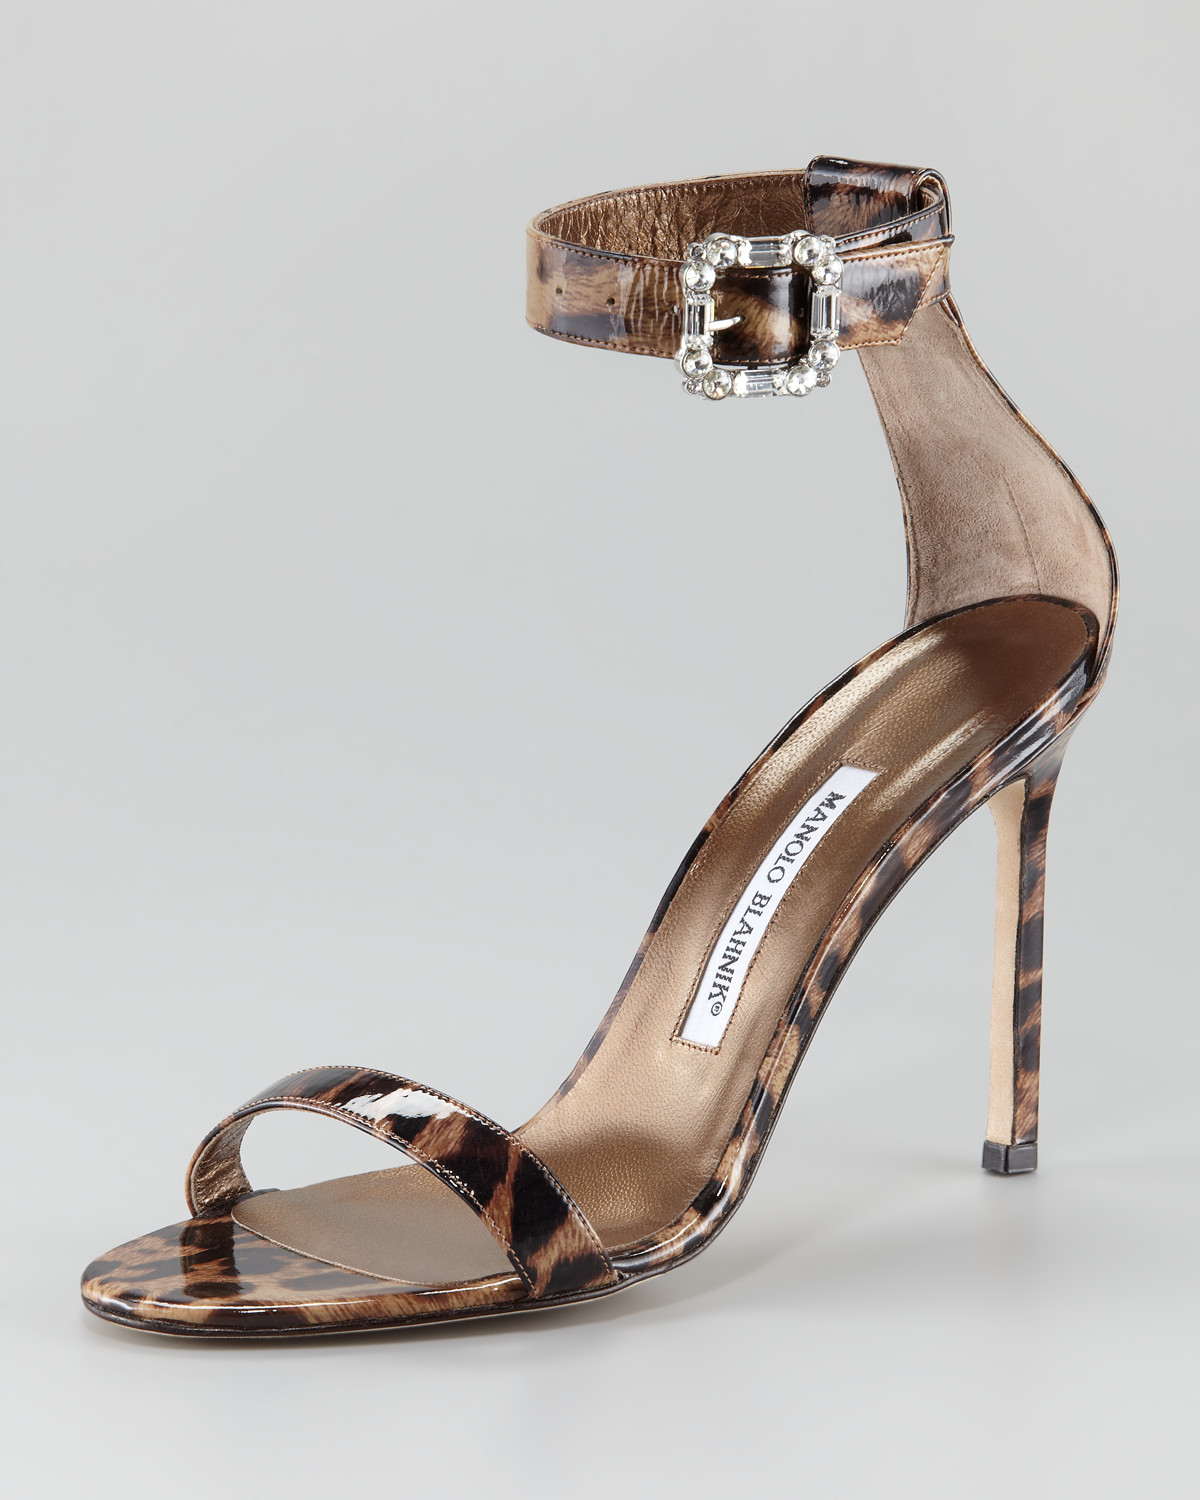 Manolo Blahnik Patent Leather Printed Sandals cheap sale under $60 cheap nicekicks cheap view tumblr cheap online lYvy8bzcO